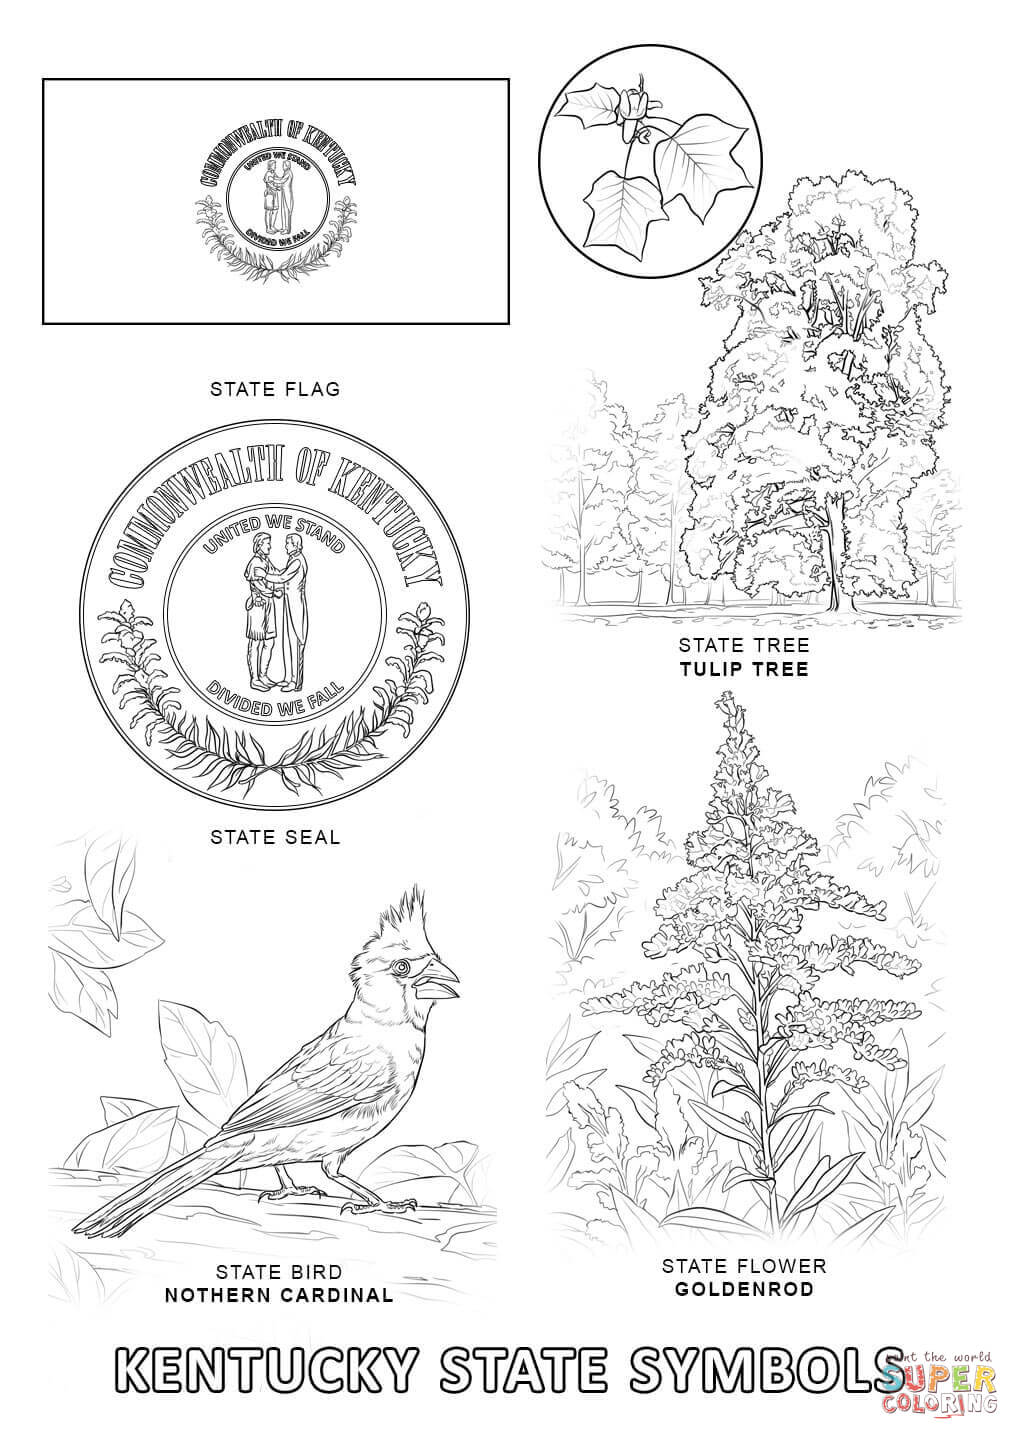 Clip Art Kentucky State Flag Coloring Page kentucky state flag coloring page az pages page